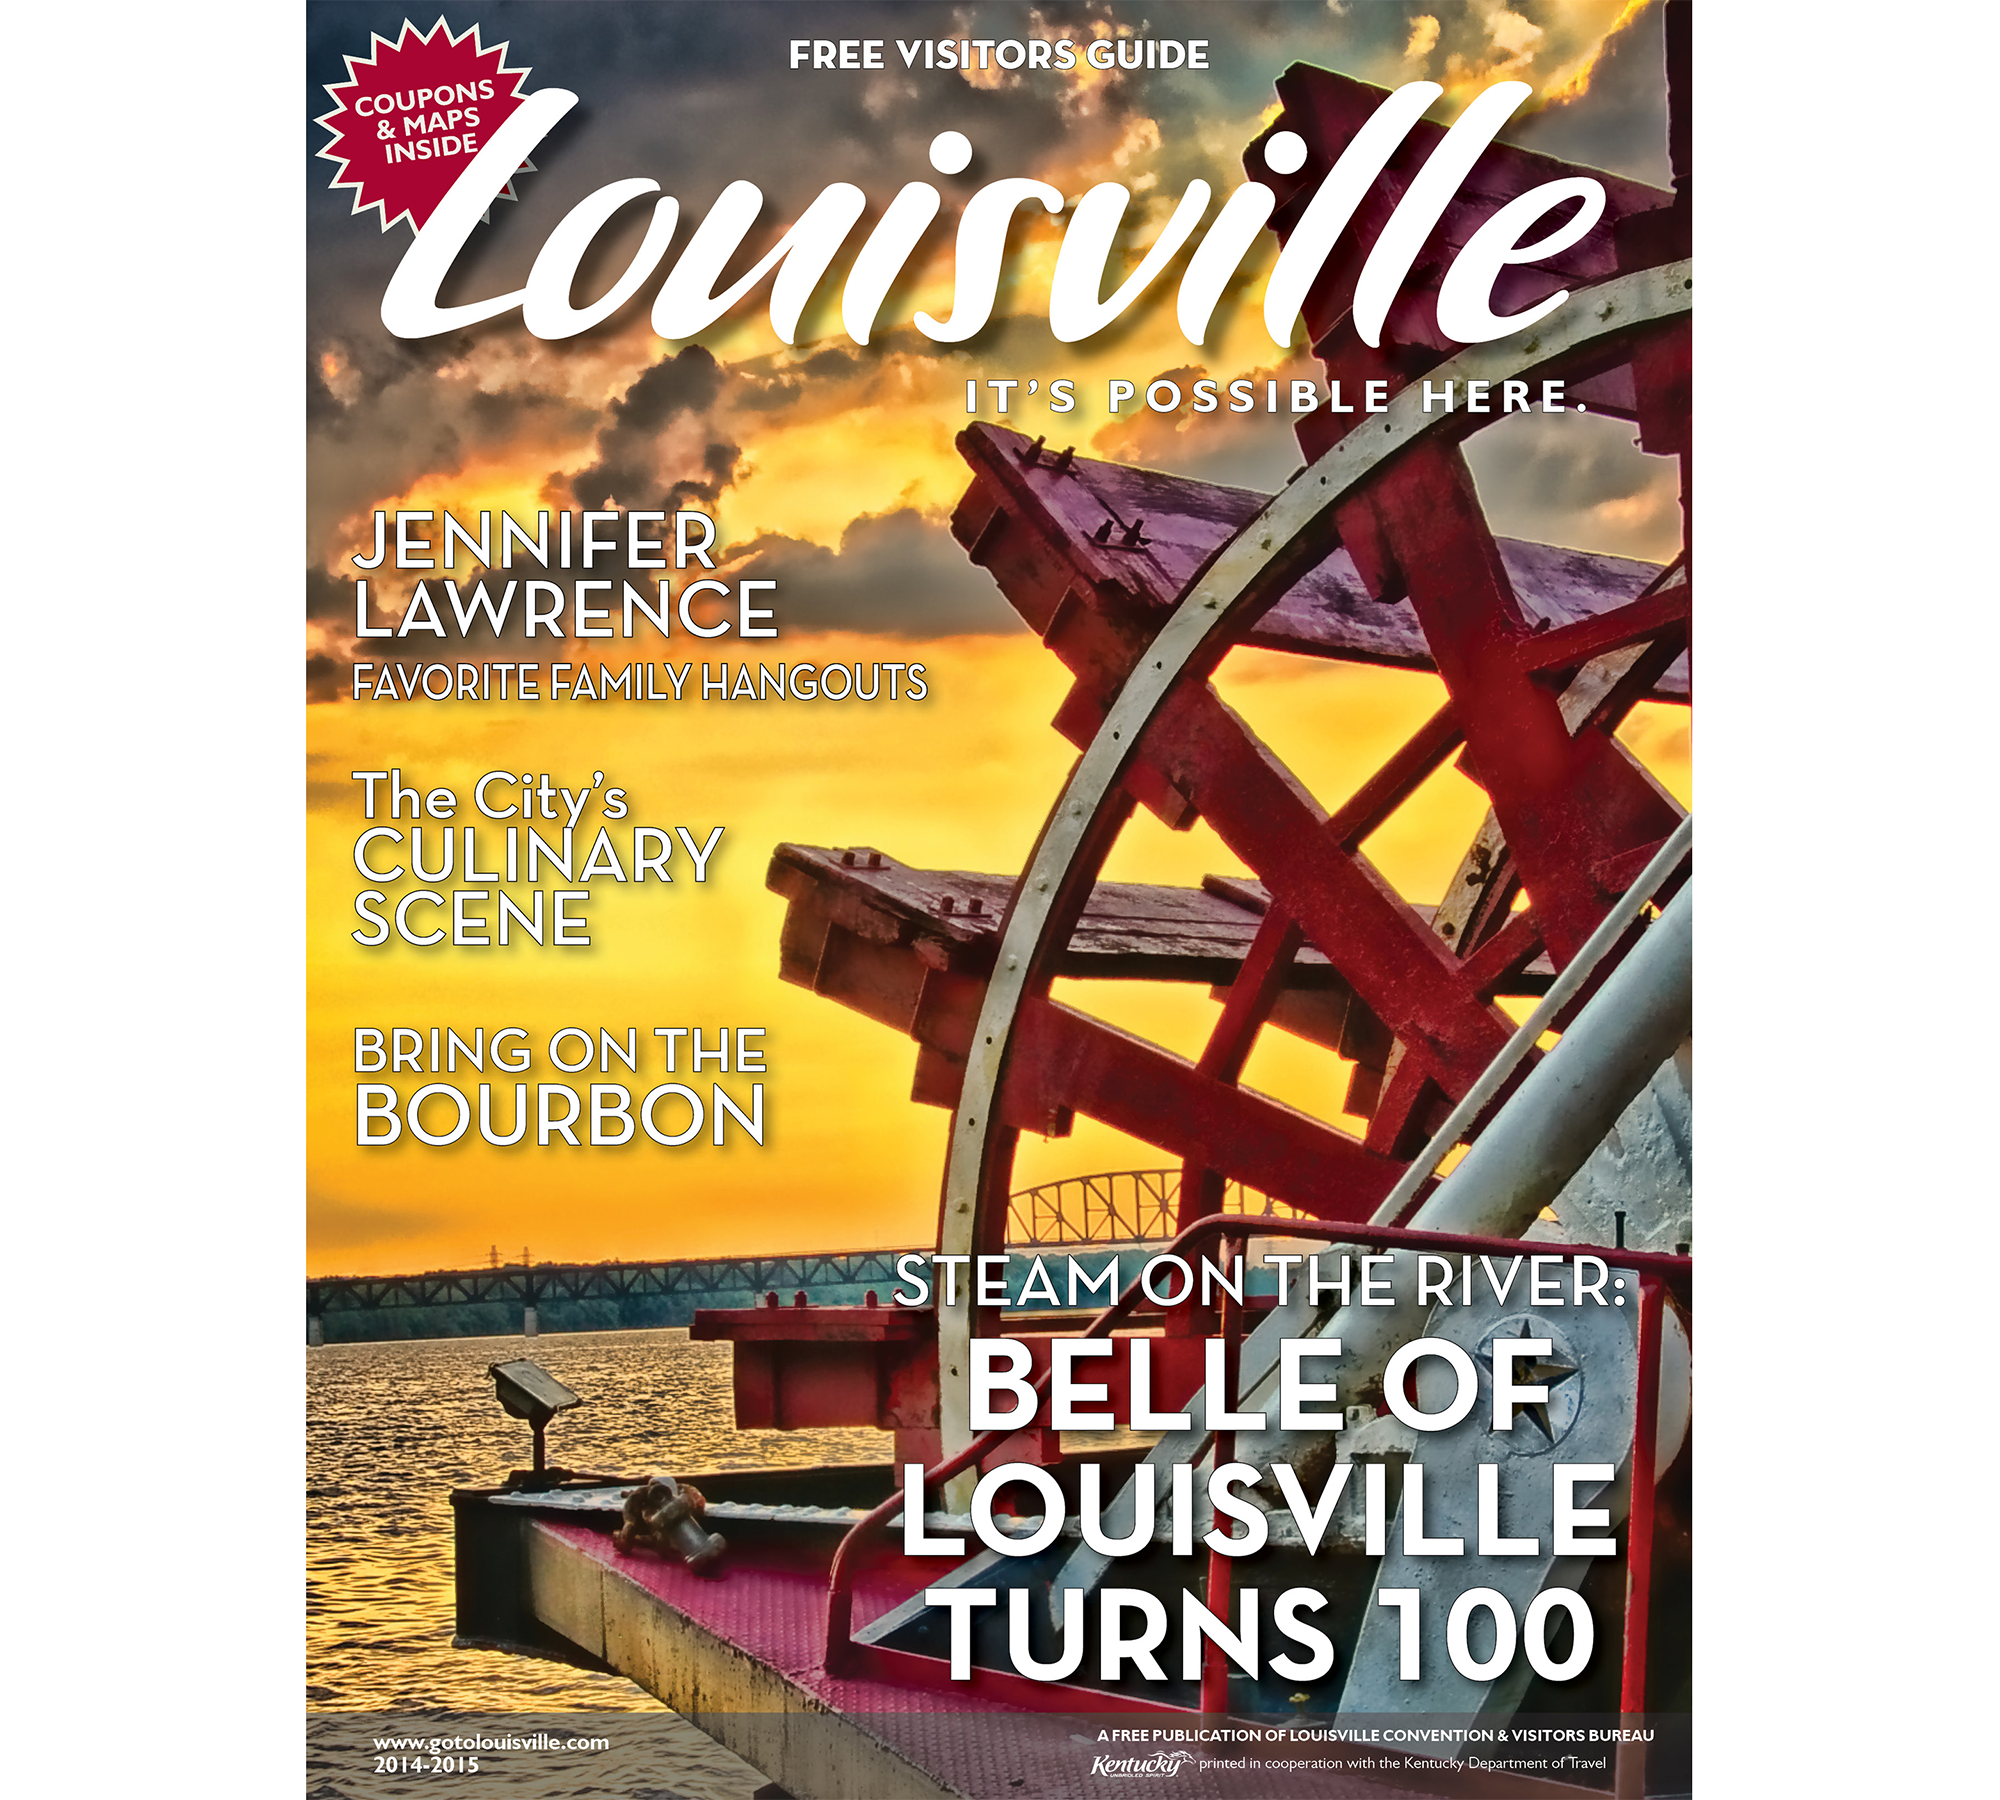 Visitors Guide 2014-15